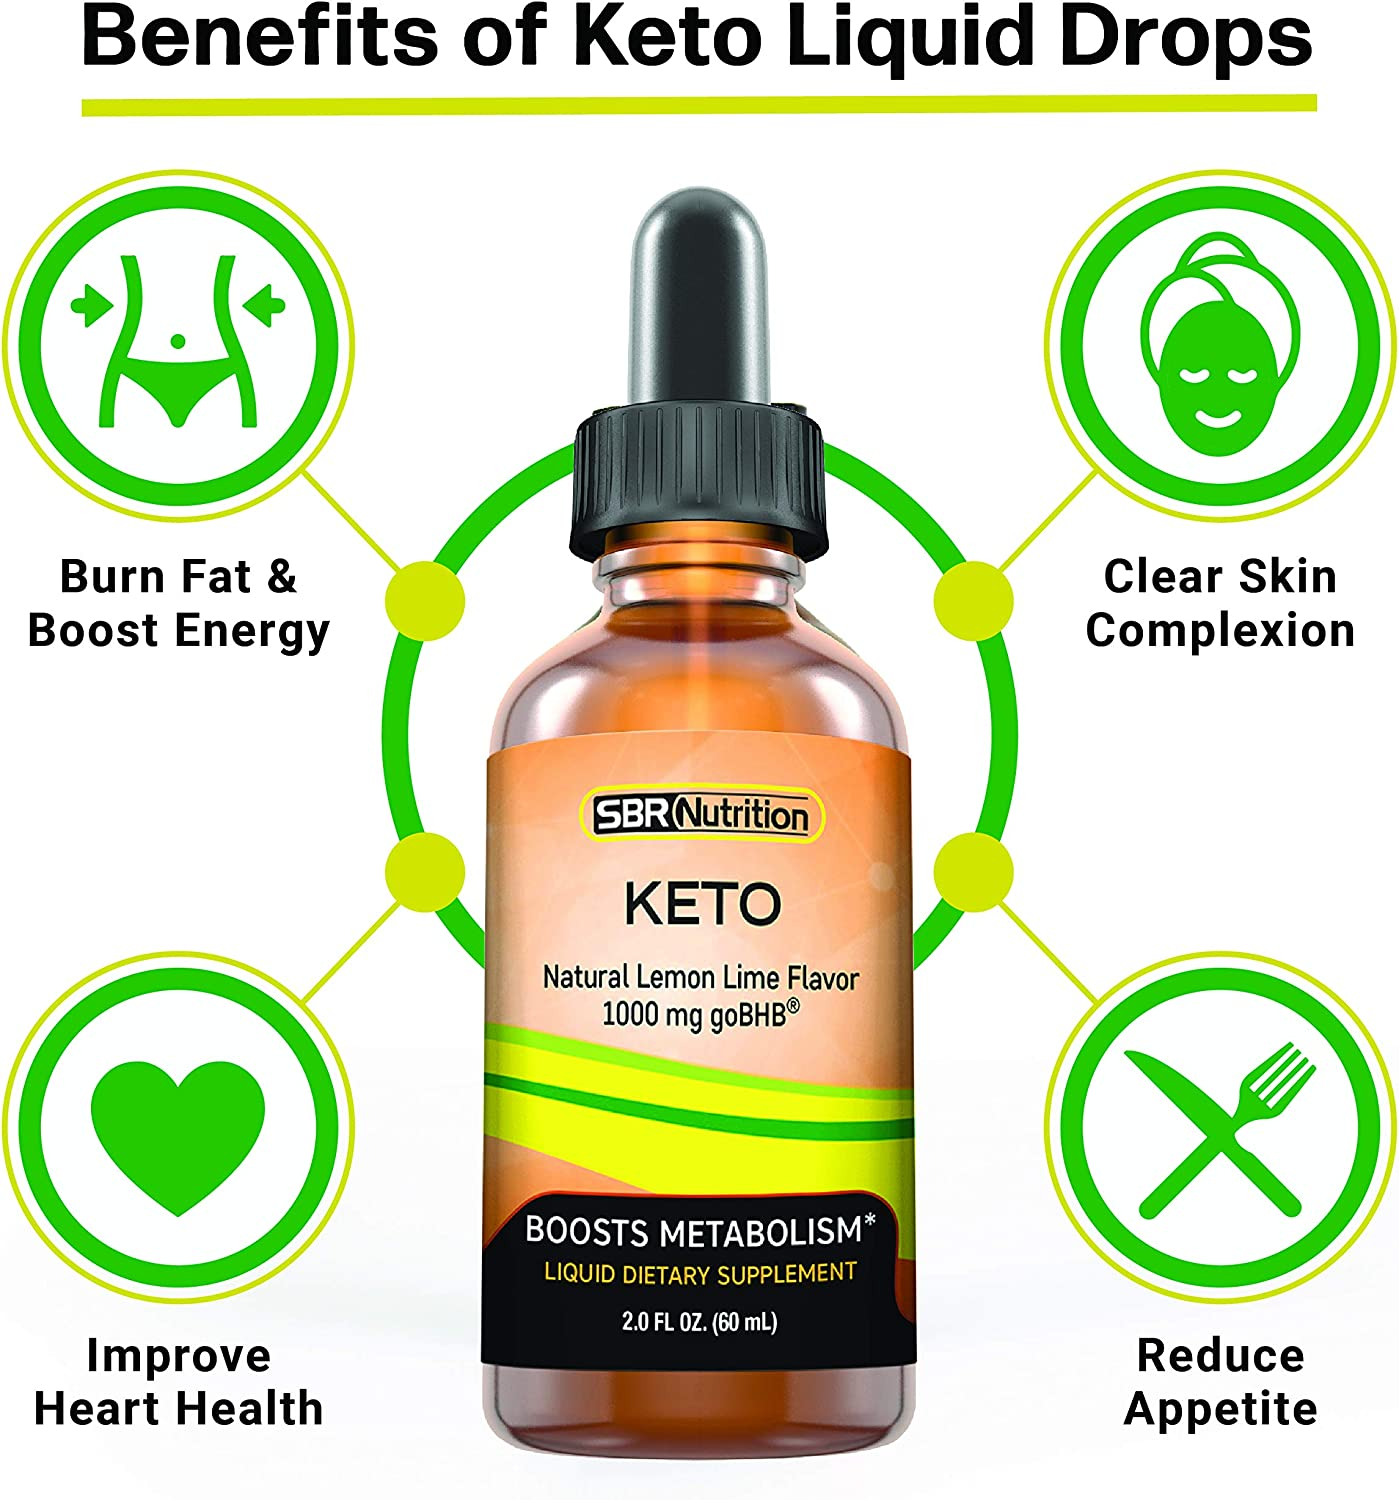 Keto Liquid Drops   Support Ketosis, Boost Energy & Metabolism, Create Energy from Fat, Manage Appetite, Cravings   Dietary Supplement   For Women, Men   2 Fl. Oz